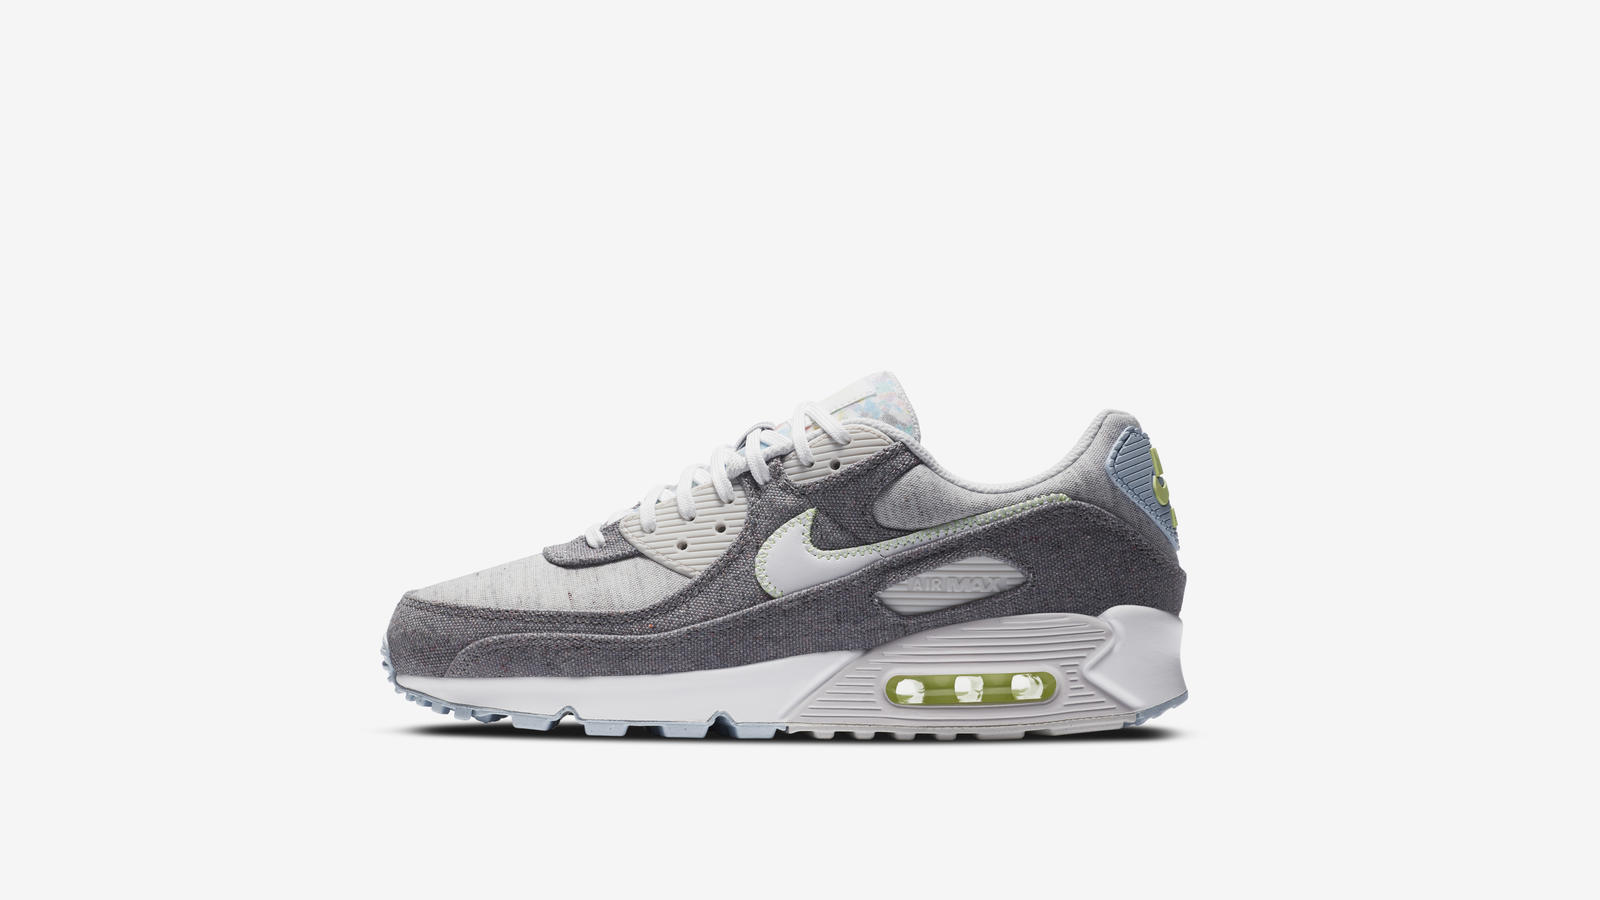 Nike Air Force 1, Air Max 90, Air Max 95, Daybreak-Type and Cortez Recycled Canvas Pack 9